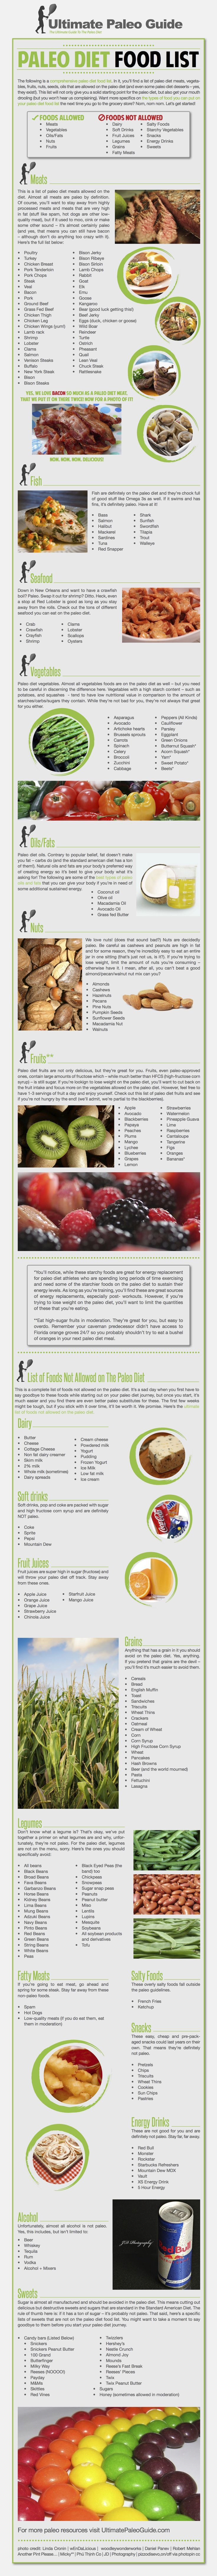 Paleo Allowed Foods and Not Allowed Foods - Posted by Keto Grandma – Paleo Diet Food List Infographic @Bryttin Youst Schwenk Jones– is this what you were telling me about? #paleo #paelodiet #weightloss